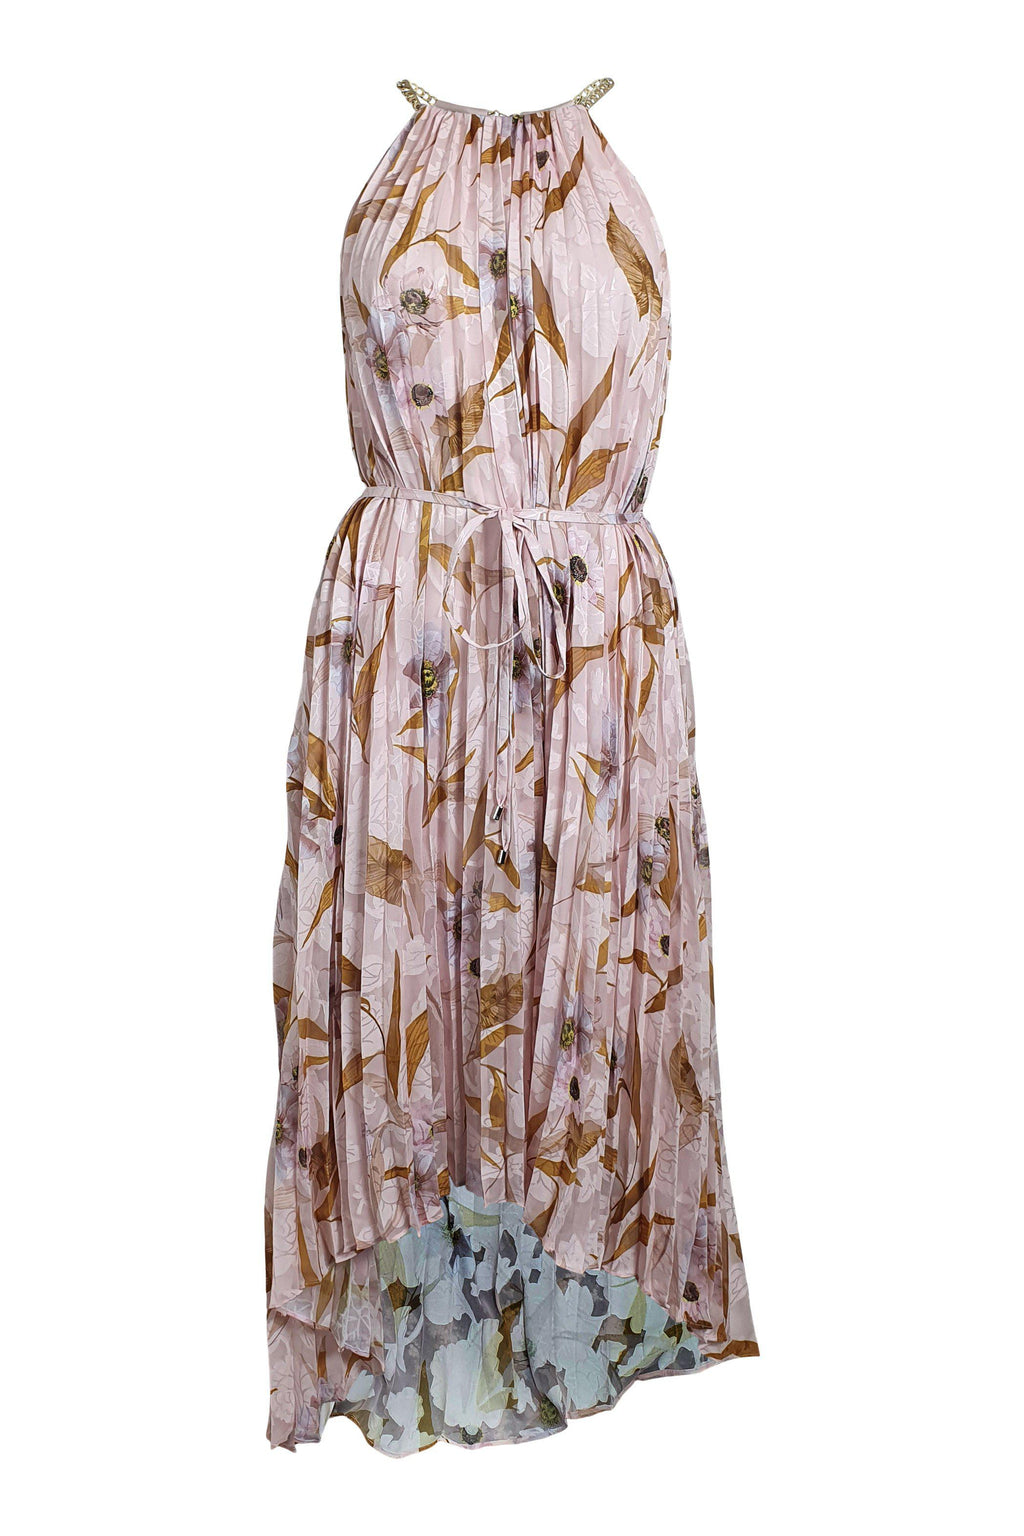 TED BAKER Light Pink Dixxie Cabana Sleeveless Pleated Maxi Dress (1 | UK 08)-The Freperie